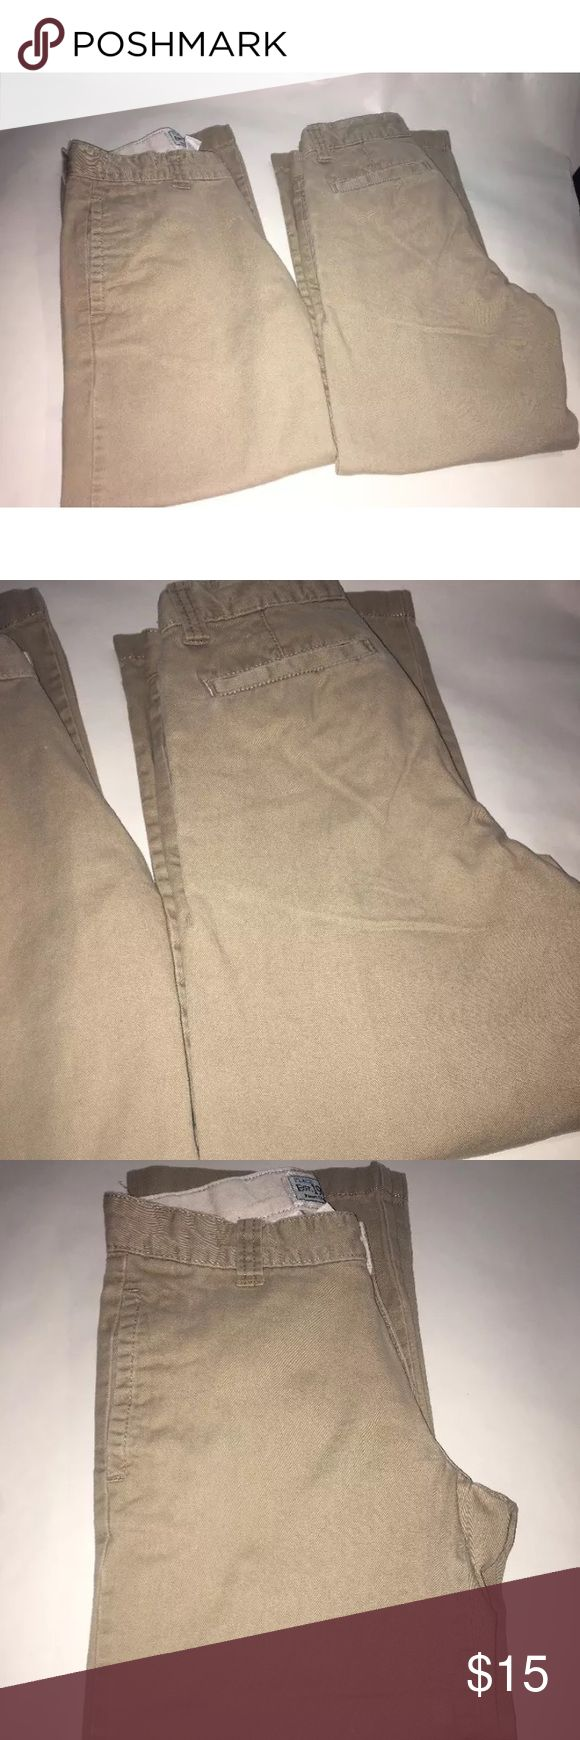 The children's place girls khaki pants lot of 2 The Toyota place girls pants lot of 2 khaki school uniform pants size 7 inseam 21 inches The Children's Place Bottoms